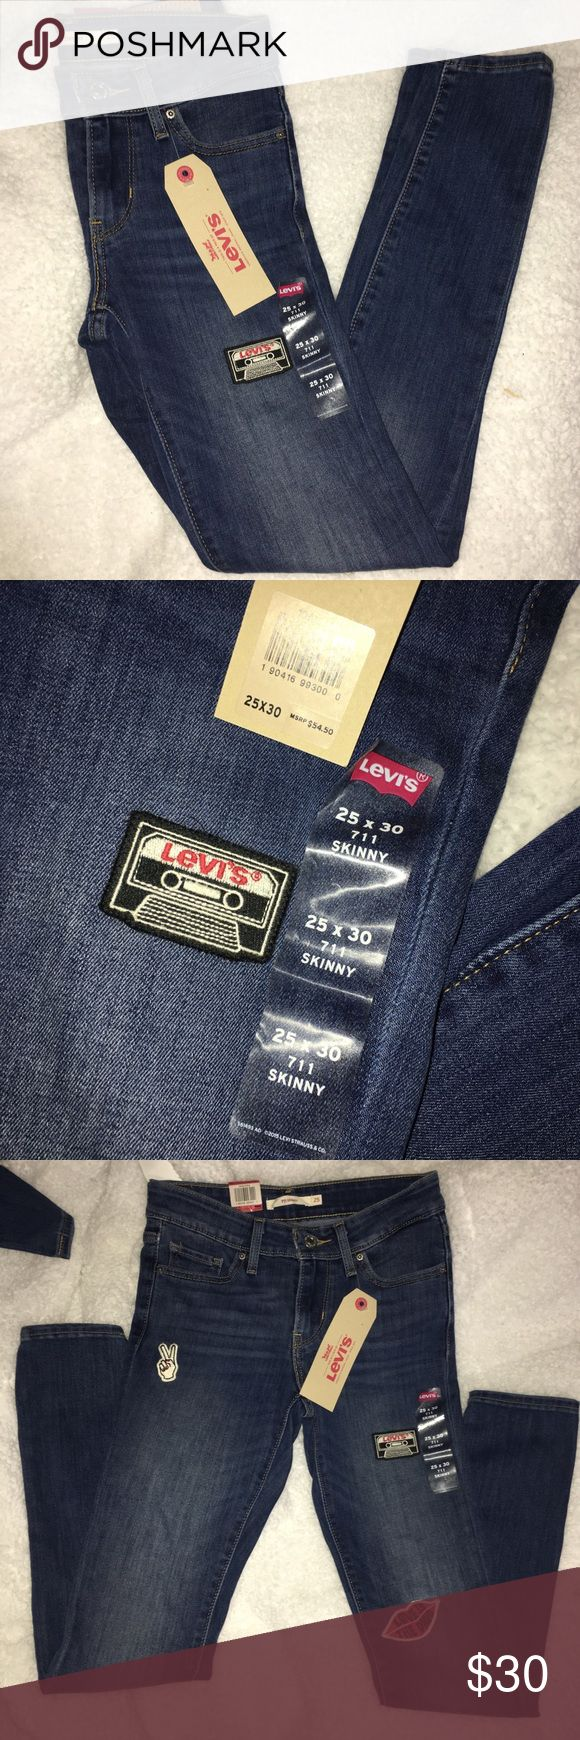 Levi's Skinny Jeans Size 25 711 levi's Skinny Jeans size 25 NWT has three patches on them as shown   mid rise   Will confer ANY offer! Levi's Jeans Skinny